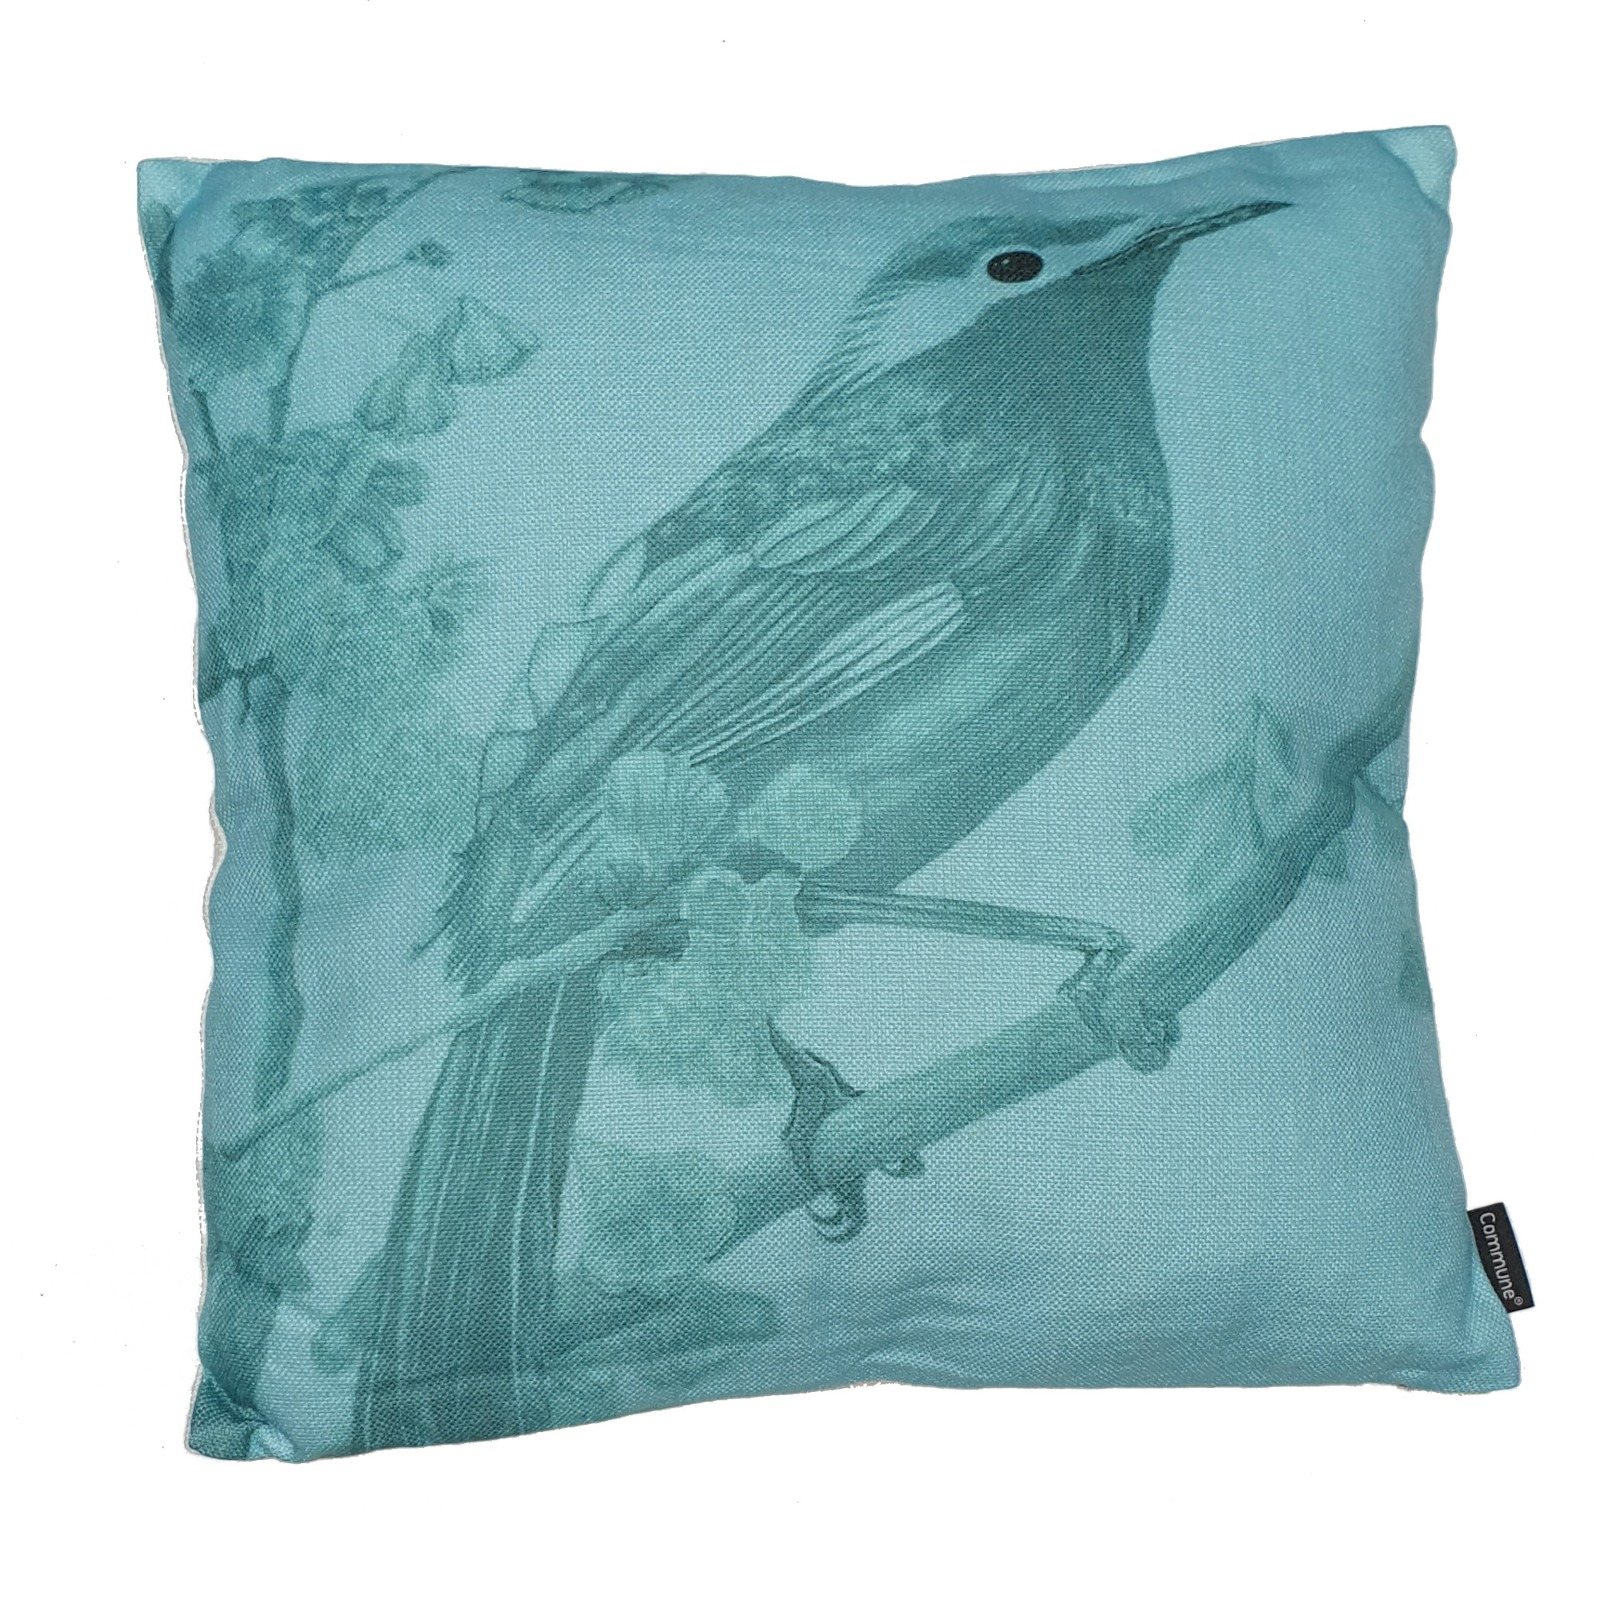 Cushion Cover with Insert - Bird & Blossom